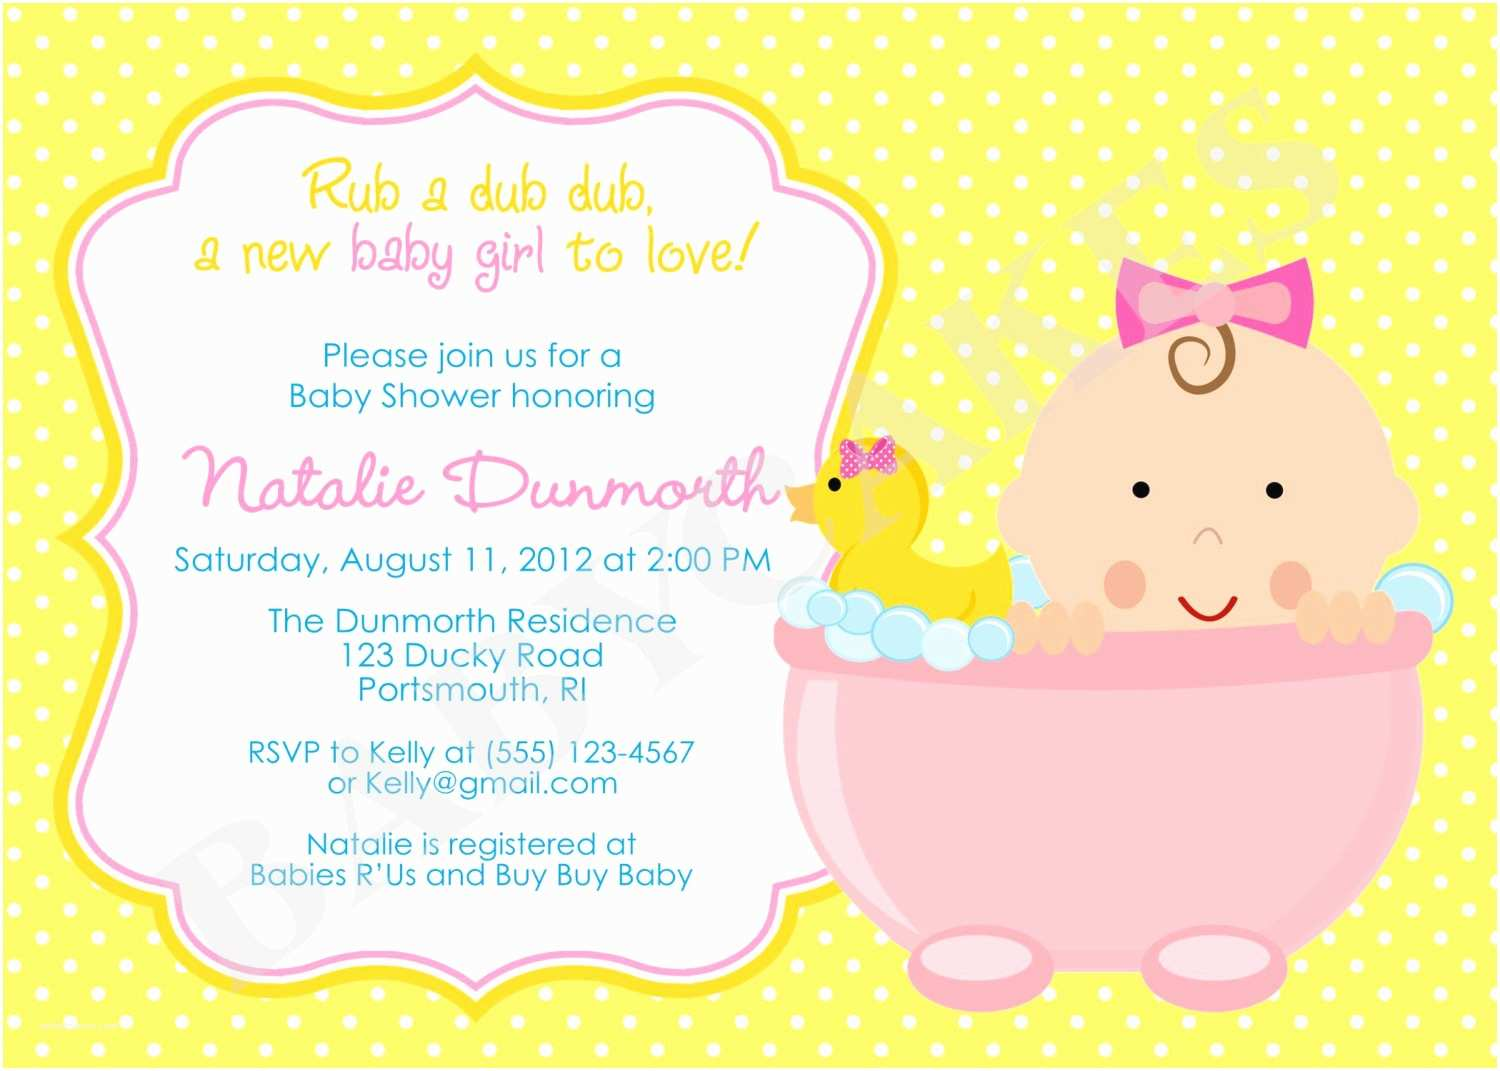 Duck Baby Shower Invitations How to Plan Rubber Ducky Baby Shower Ideas